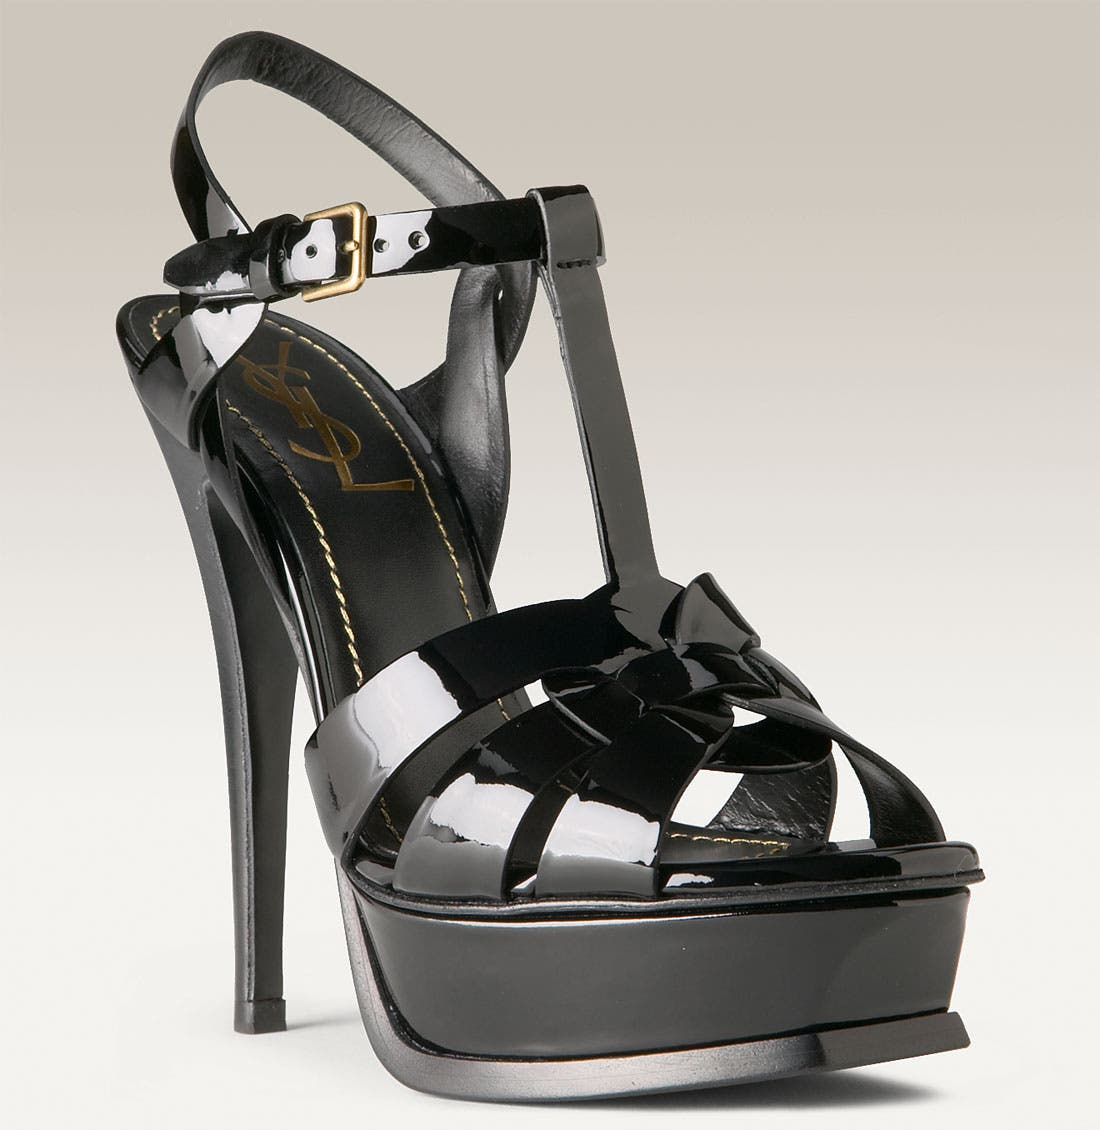 Alternate Image 1 Selected - Yves Saint Laurent 'Tribute' Sandal